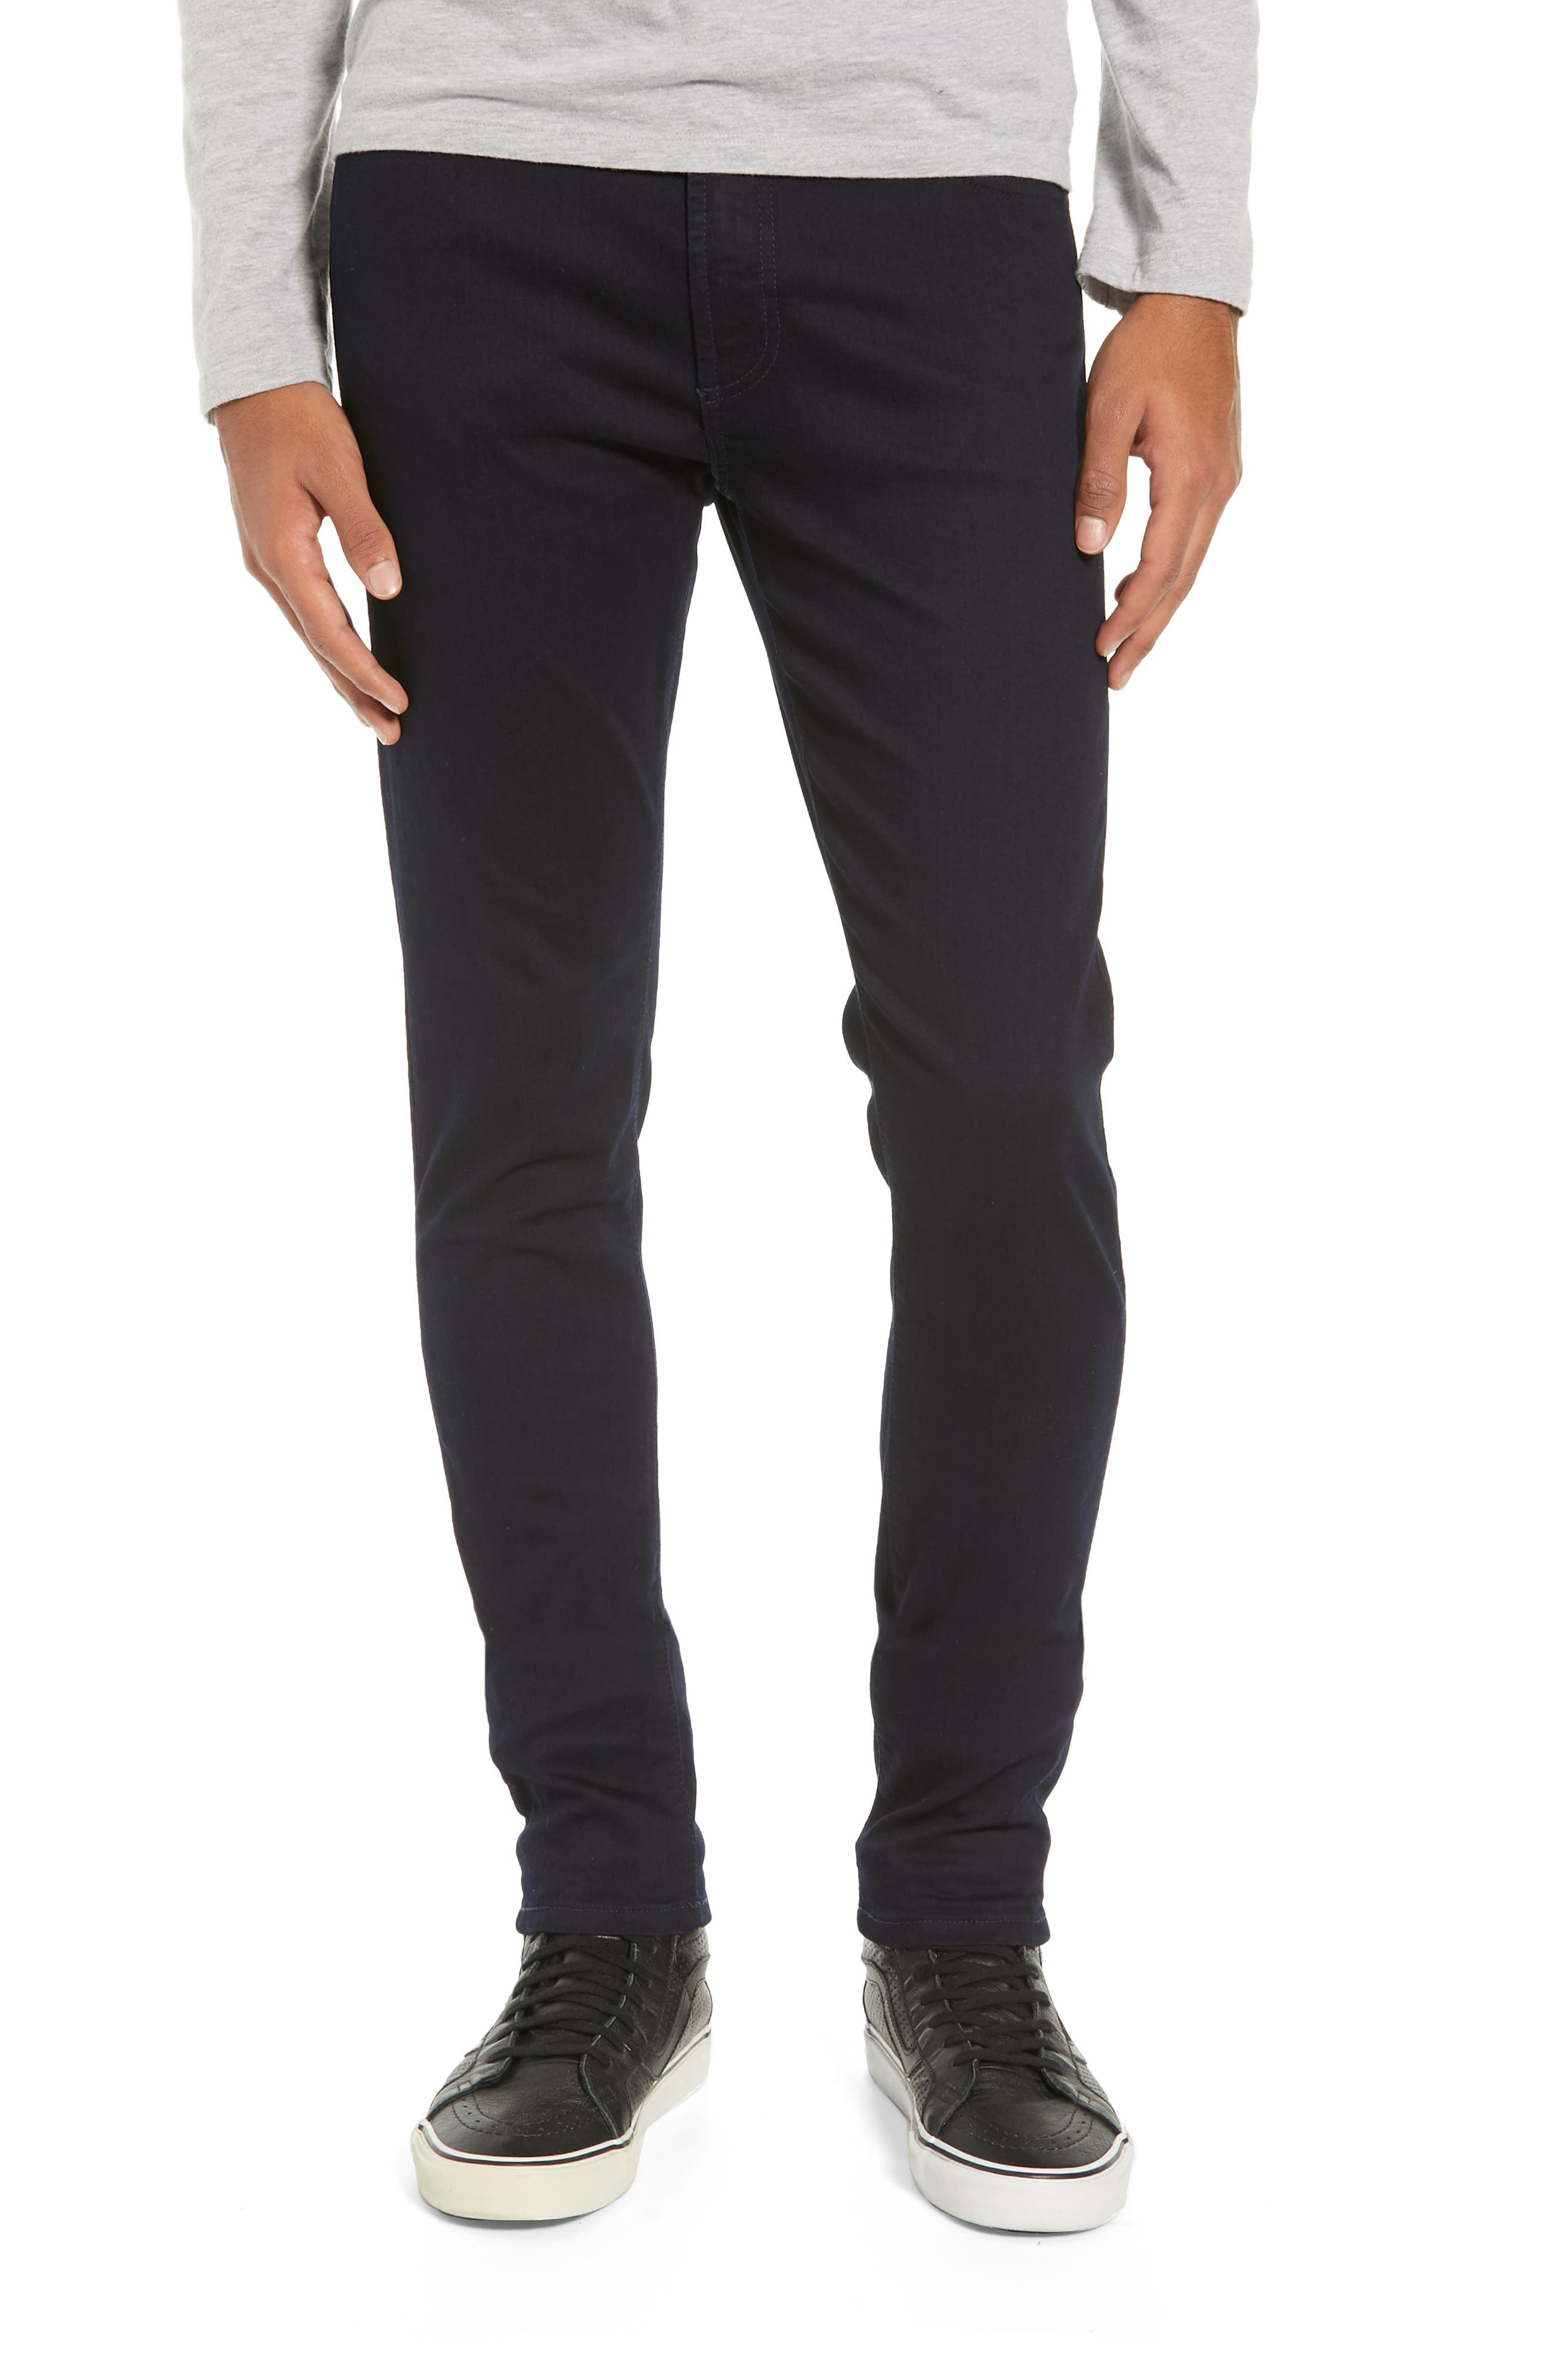 MONFRERE Greyson Skinny Fit Jeans in London